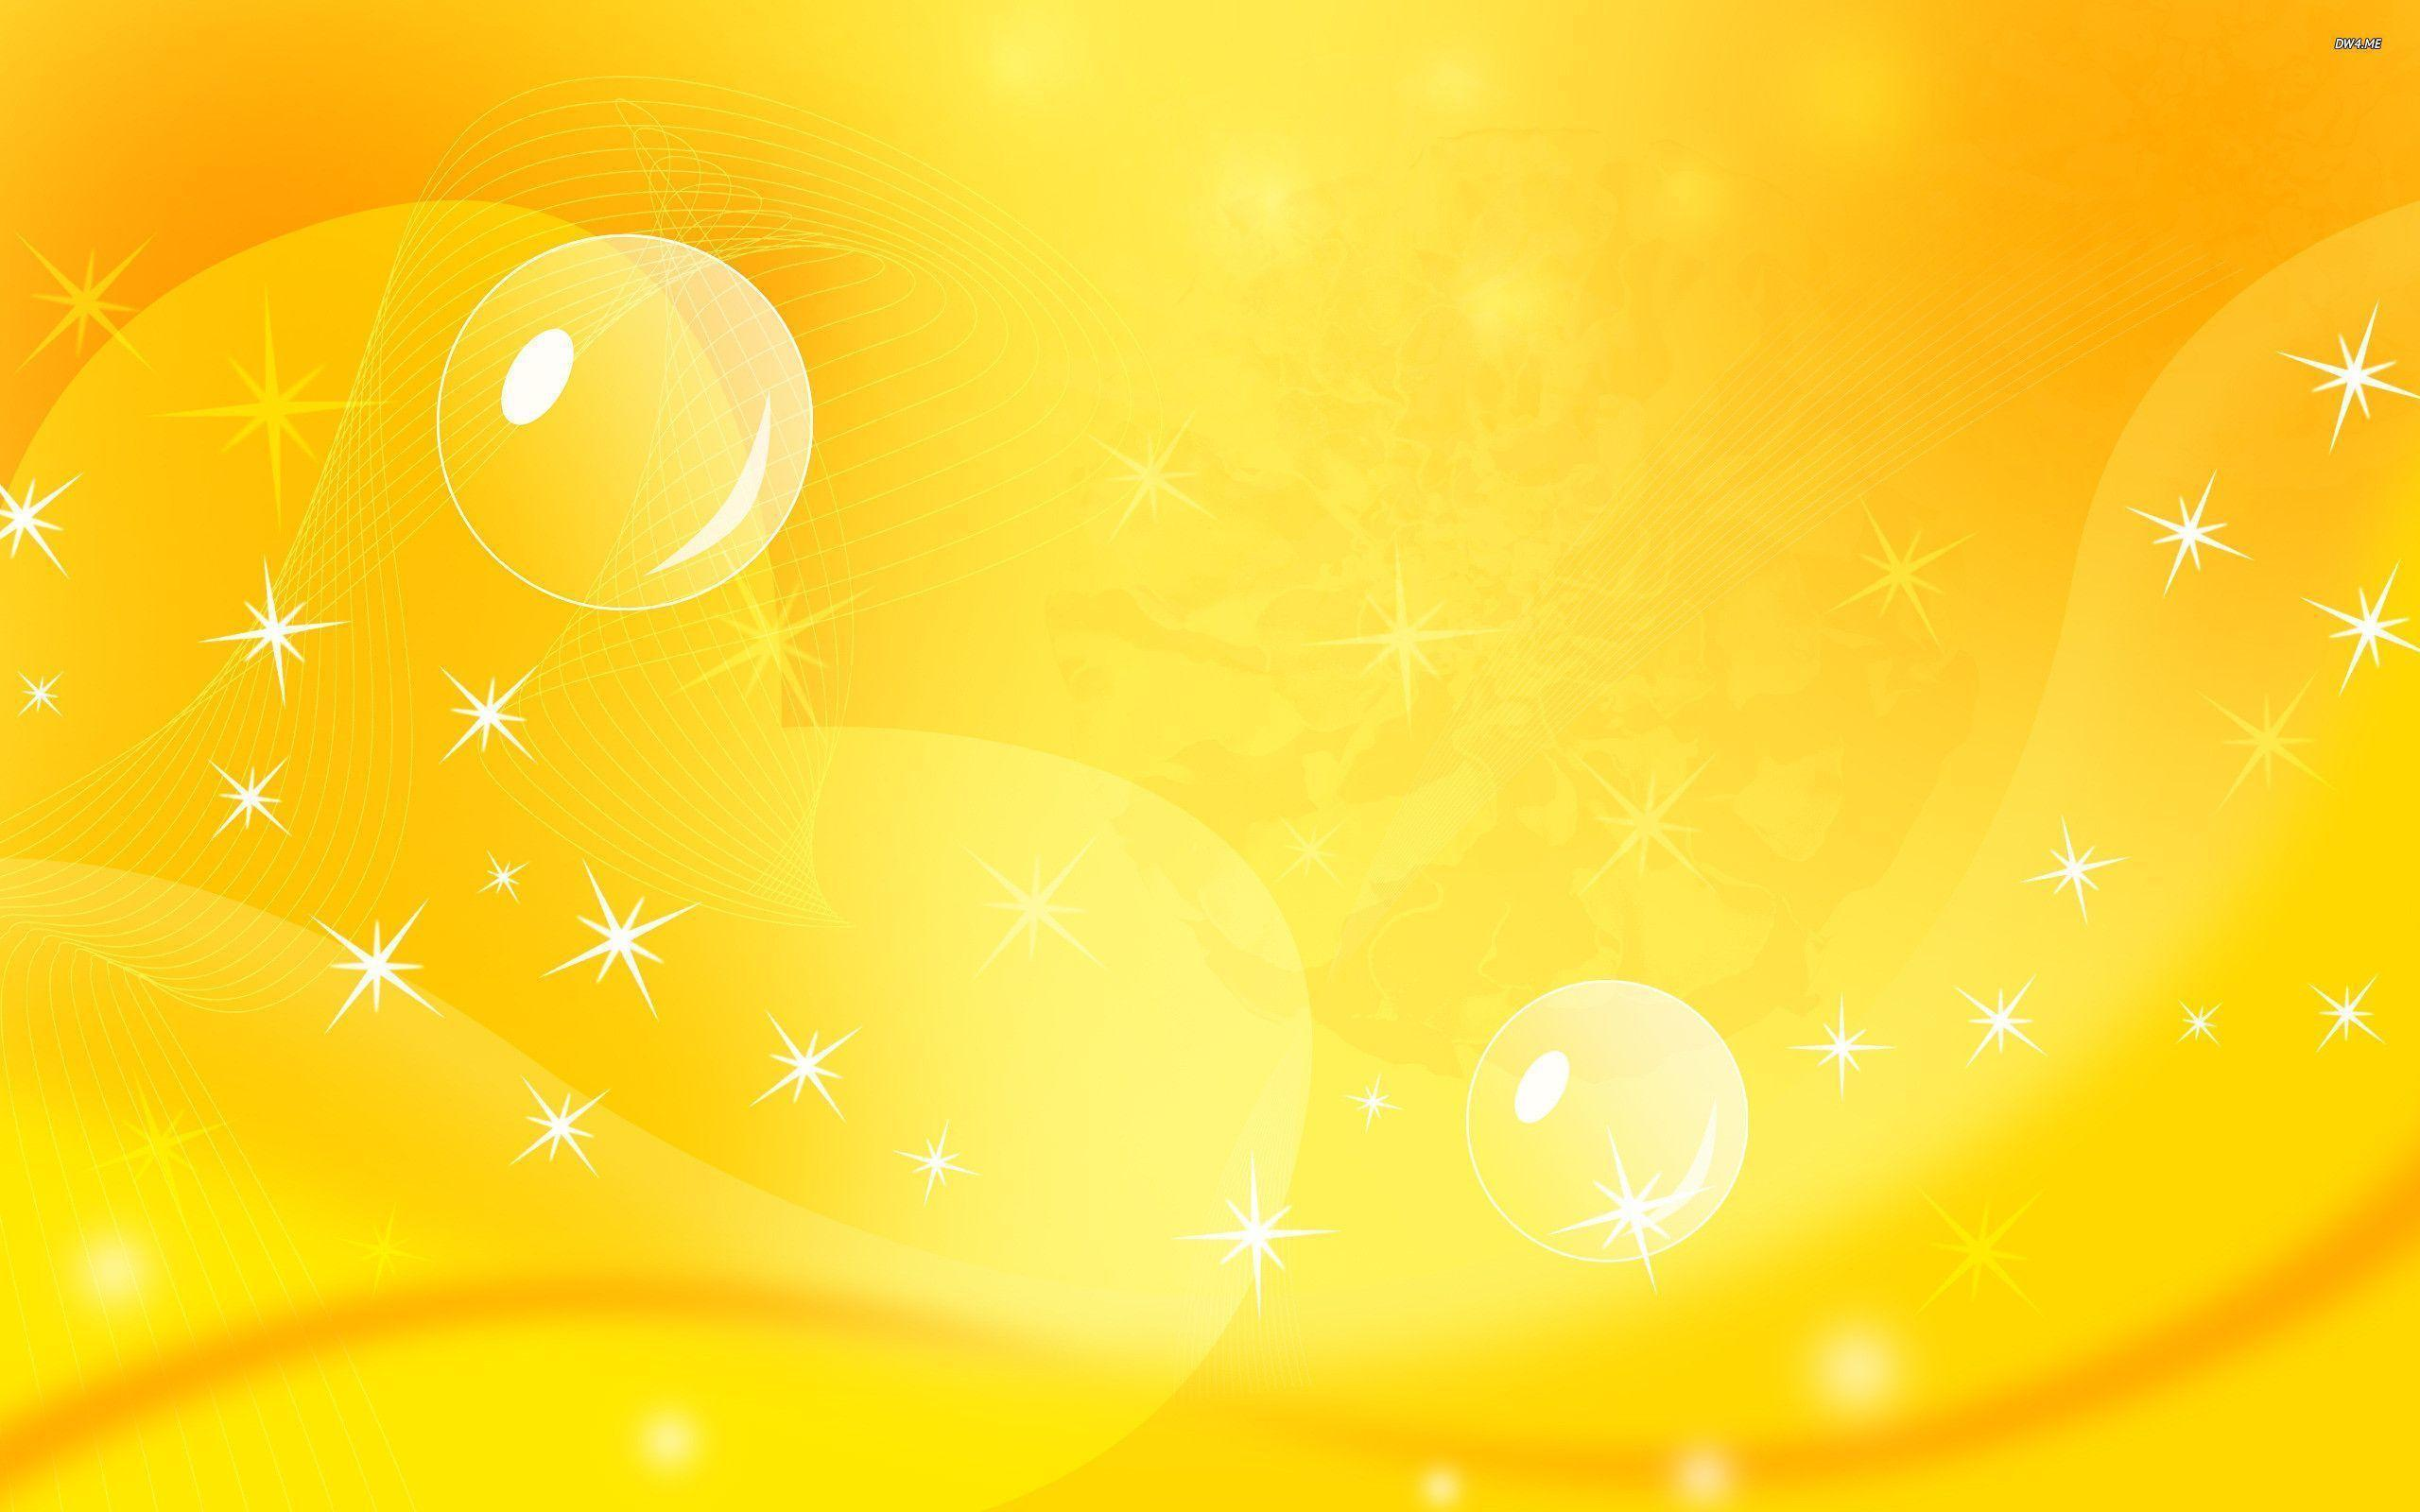 Yellow Wallpapers - Yellow Wallpaper (34512615) - Fanpop